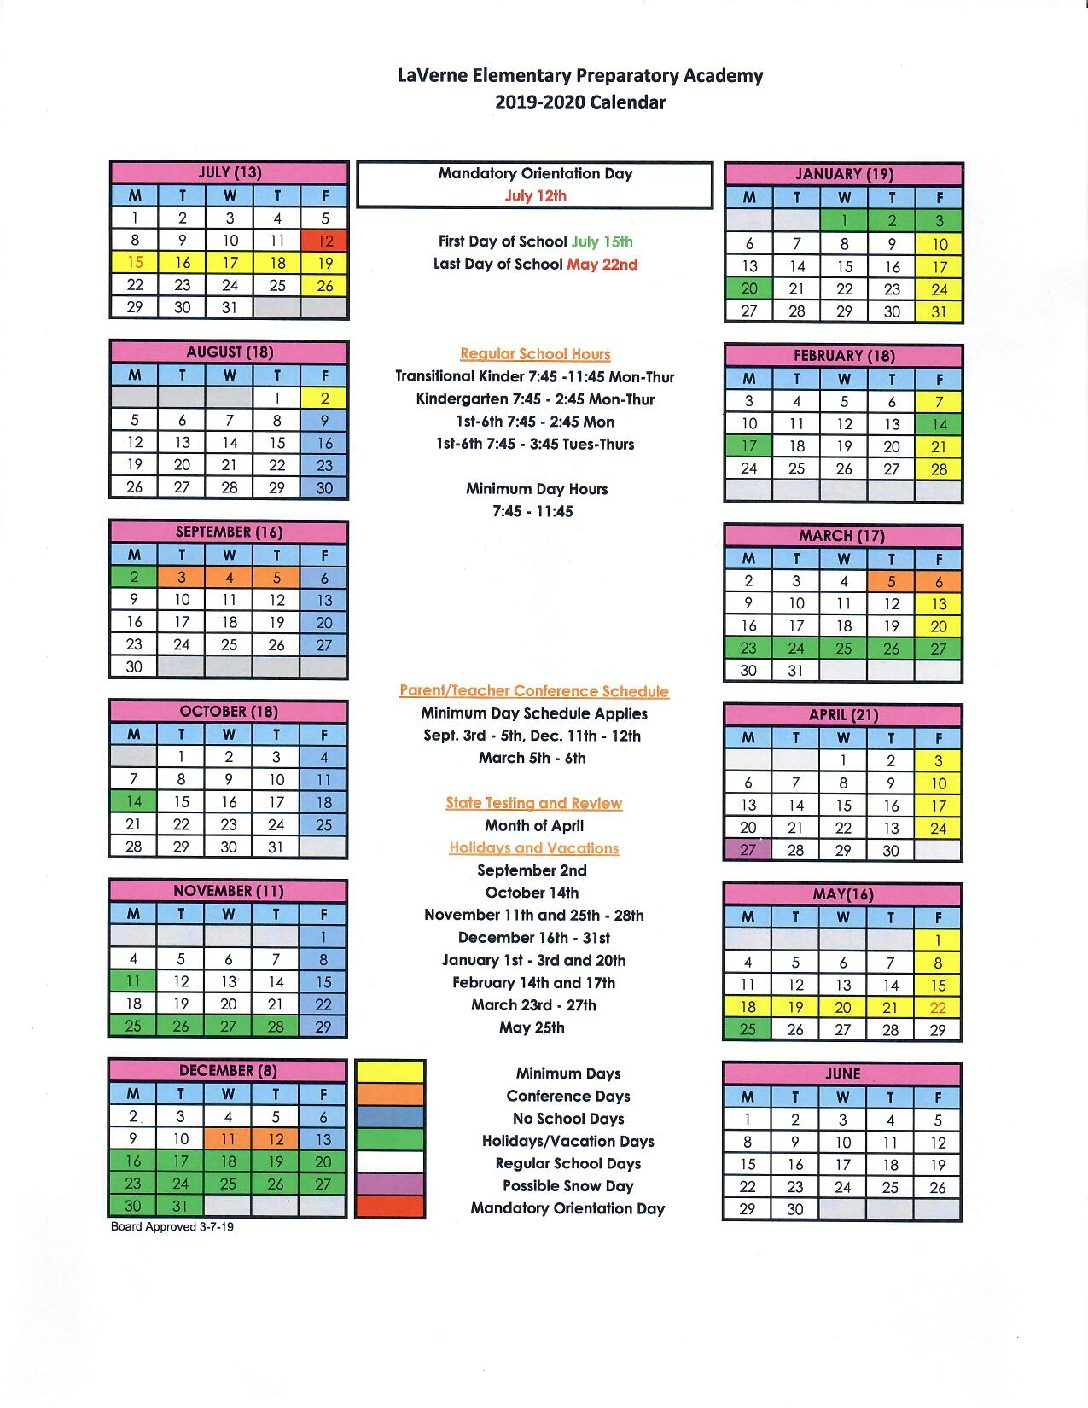 School Calendar 2019-2020 – Lepacademy with regard to Victorville Elementary School Calendar